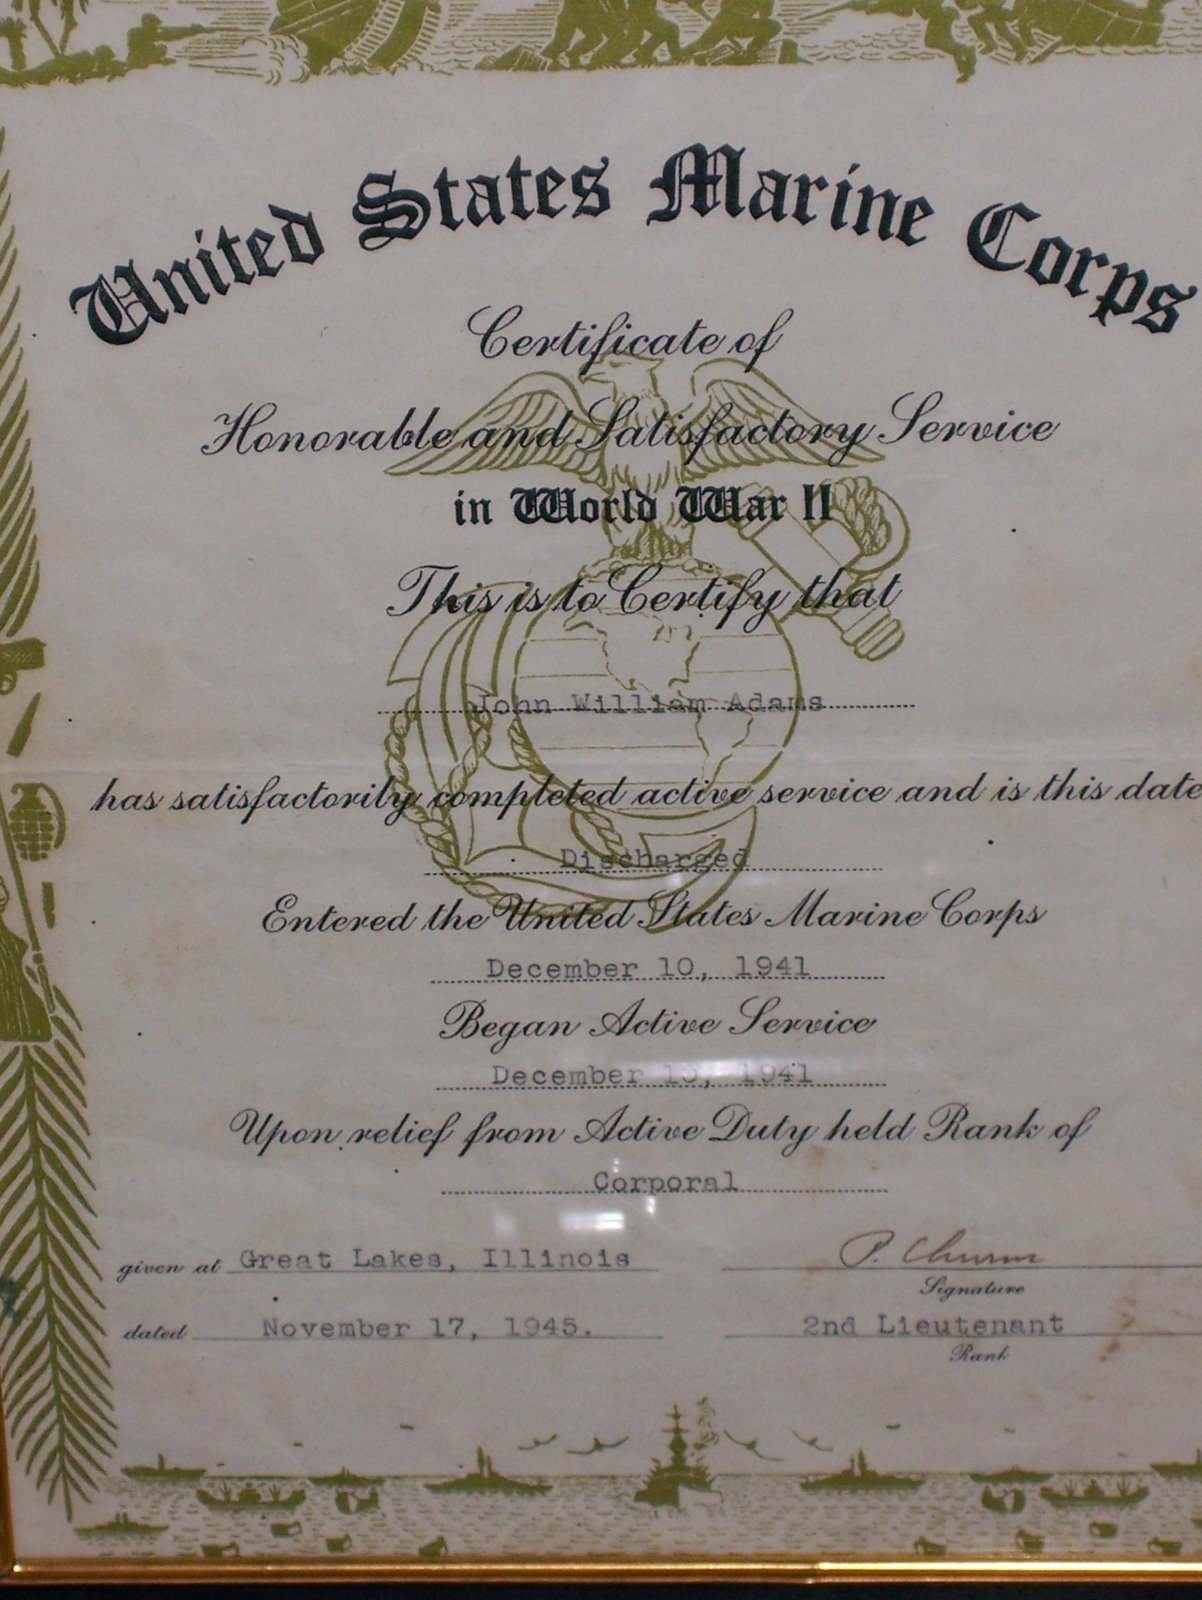 John Adams, Enlistment Date December 10, 1941